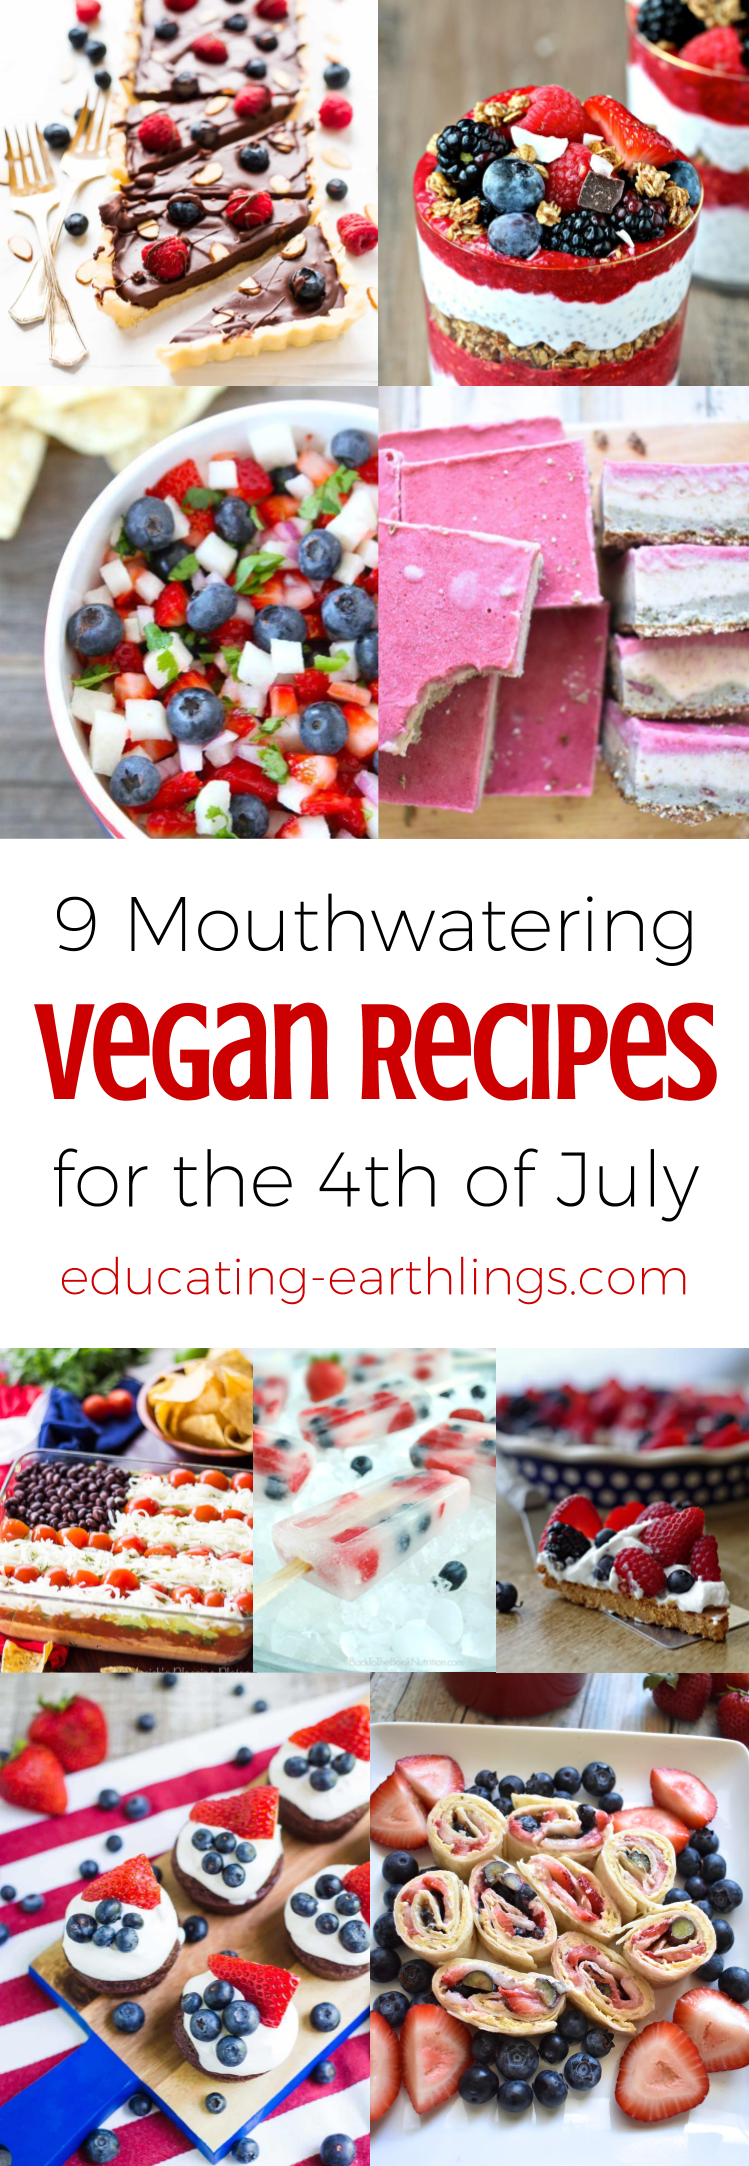 9 Mouthwatering Vegan Recipes For The 4th Of July Holiday